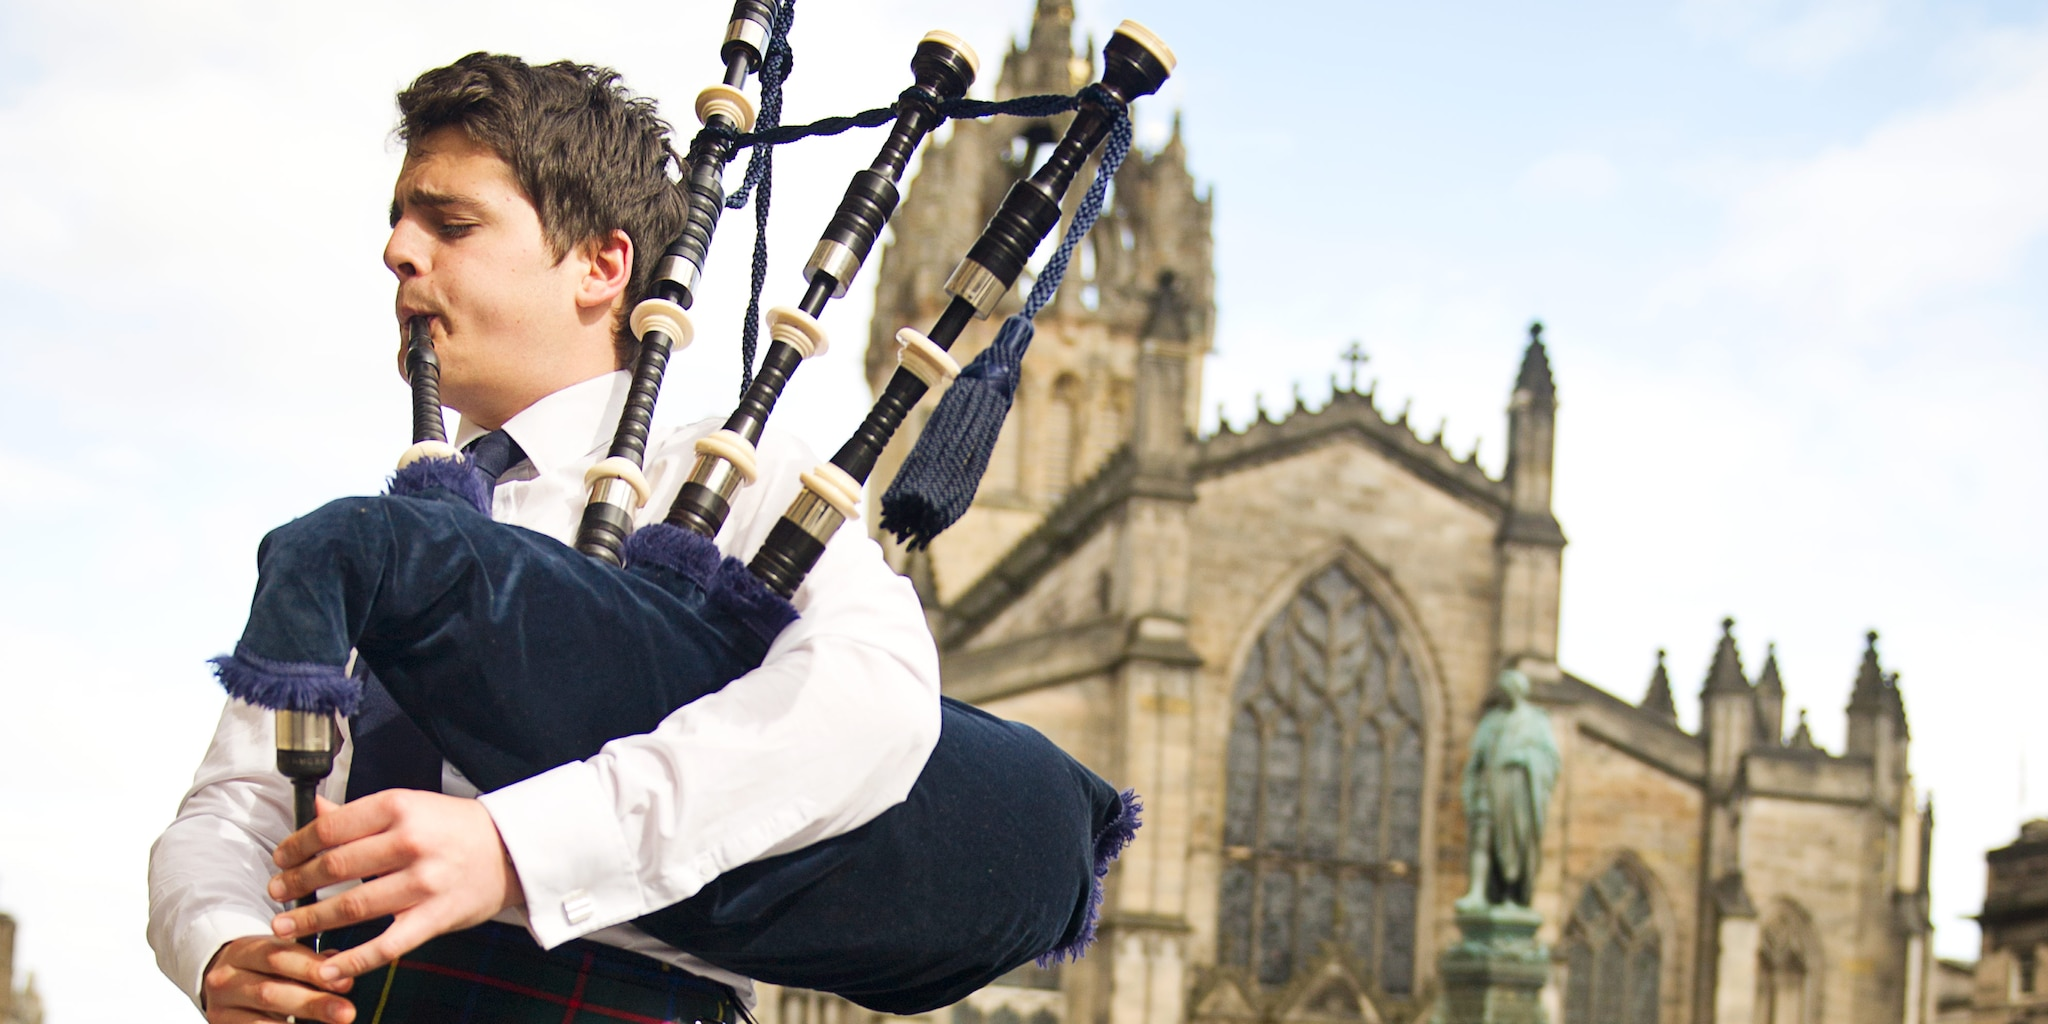 A bagpiper plays the bagpipes outside an old stone church